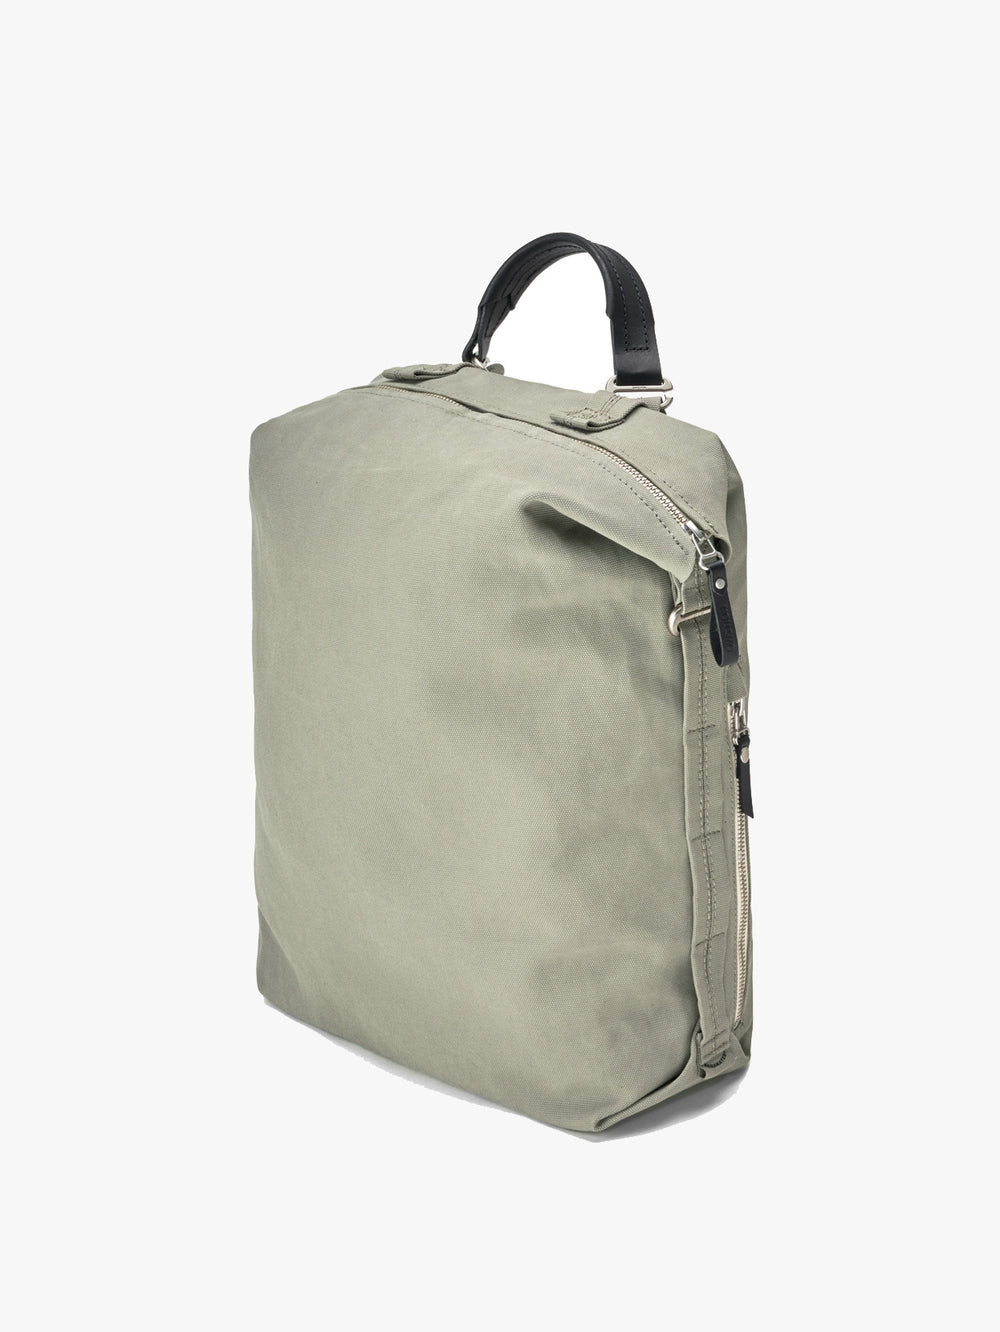 Compact backpack in organic fibers